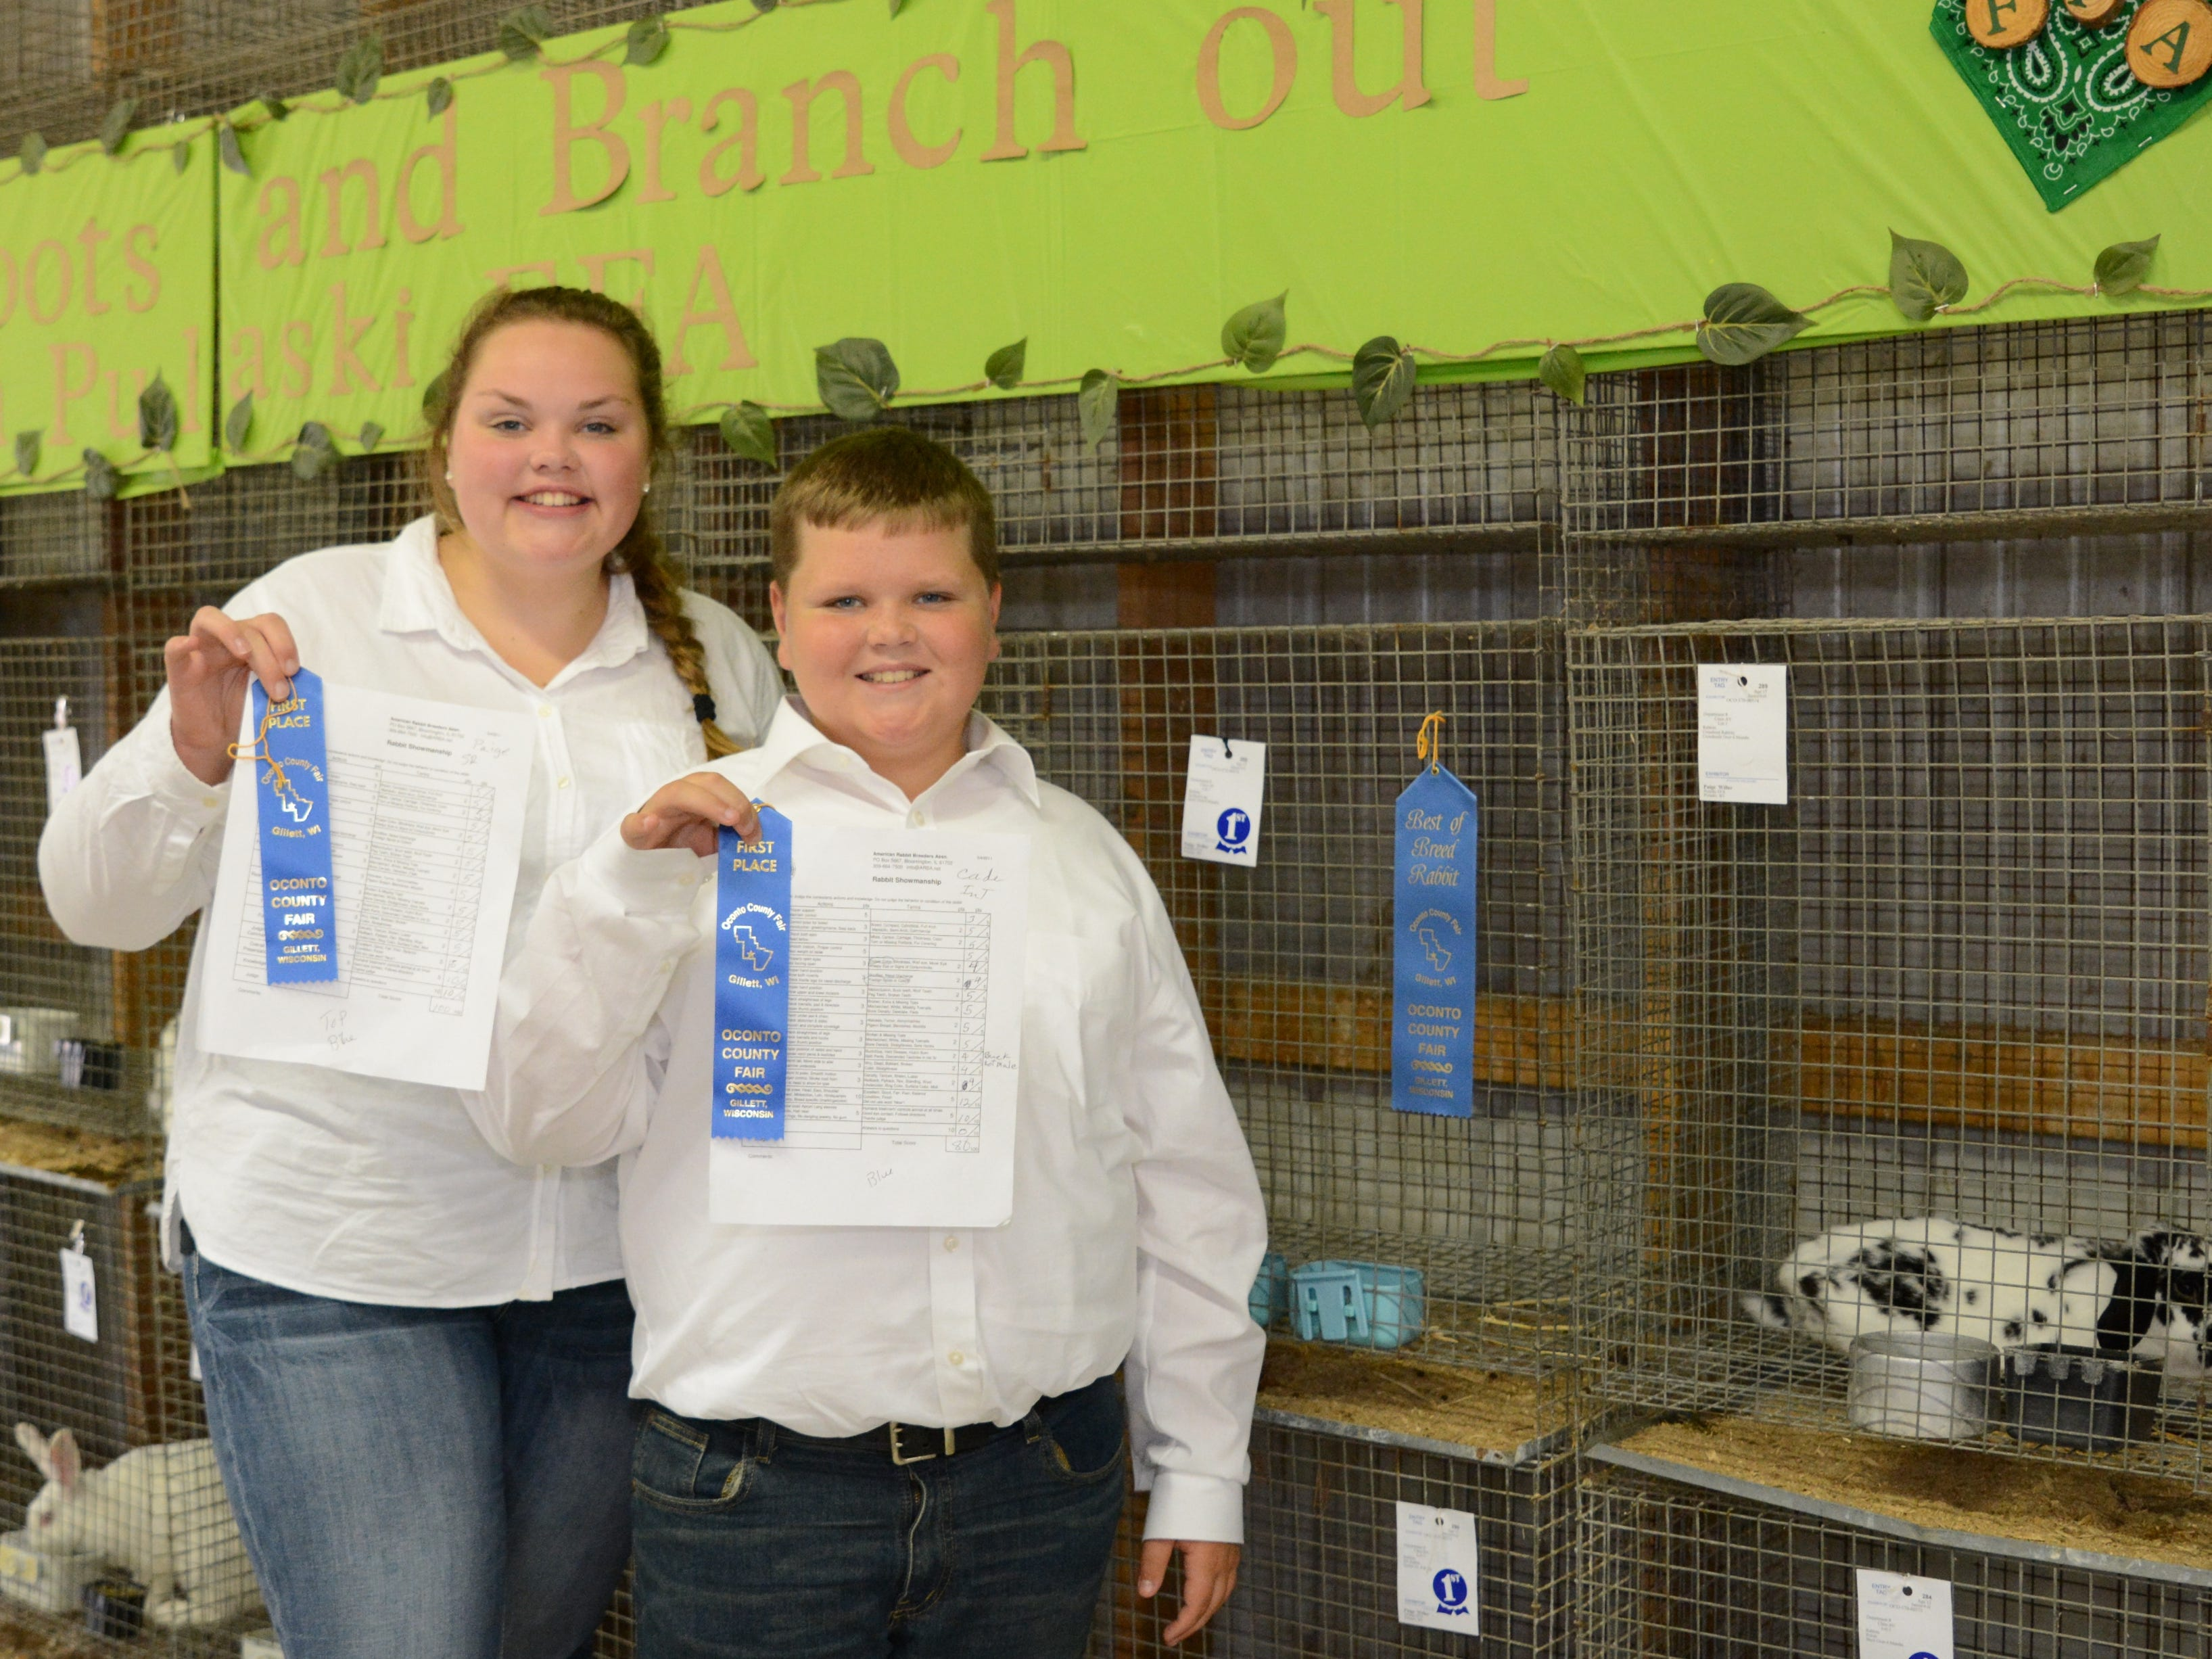 Siblings Paige Willer 16, and Cade Willer, 12,  combined to win Best of Breed, Senior Showmanship, and Runner-up in the Intermediate Showmanship for their rabbits at the Oconto County Fair on Friday, Aug. 17.